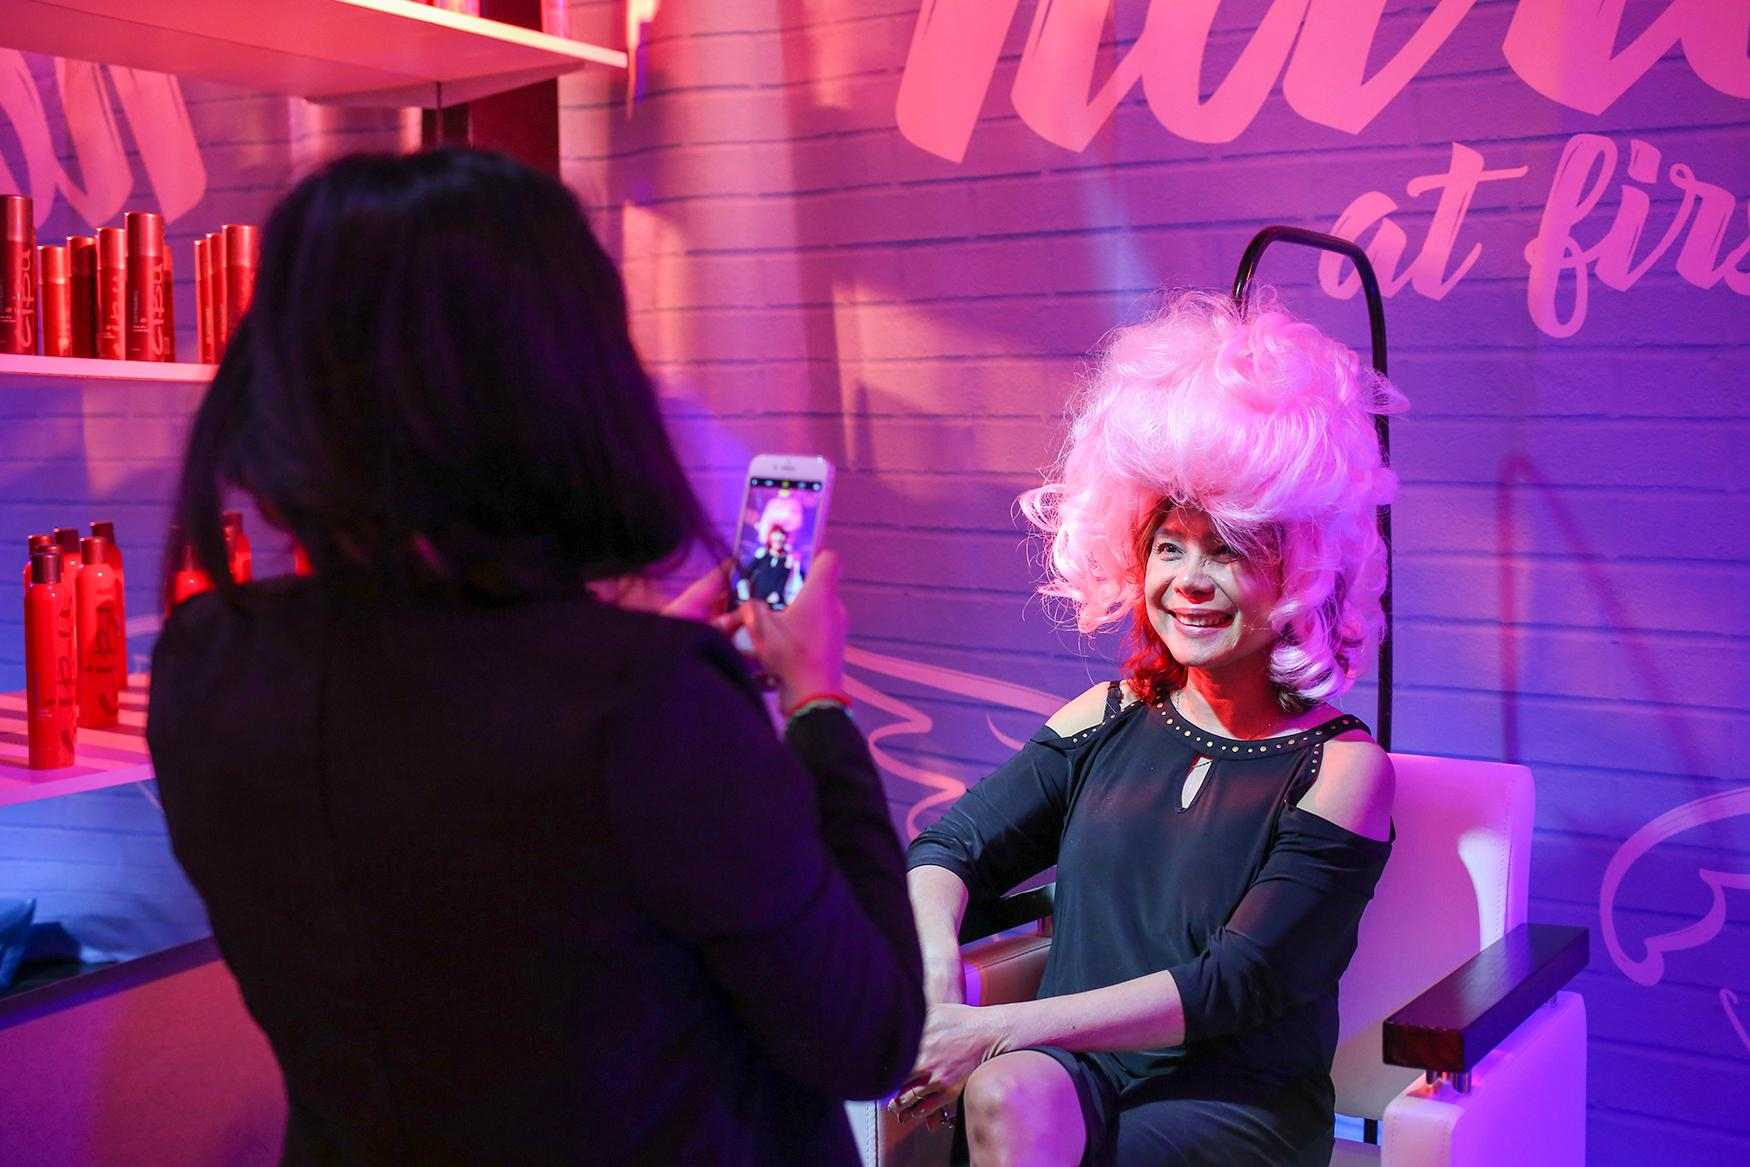 From now until Monday, September 3, you can stop by{ } Change it Up, a hair-themed pop-up in Tyson's Corner. Created by Hair Cuttery, the pop-up is meant to inspire you to change up your hair. The pop-up includes a ton of Instagram-worthy spaces, such as a ball pit, an infinity mirror room and selfie booths. You can also get a free pink hair extension - for each one staffers put in your hair, $25 will be donated the Capital Breast Care Center. (Amanda Andrade-Rhoades/DC Refined)